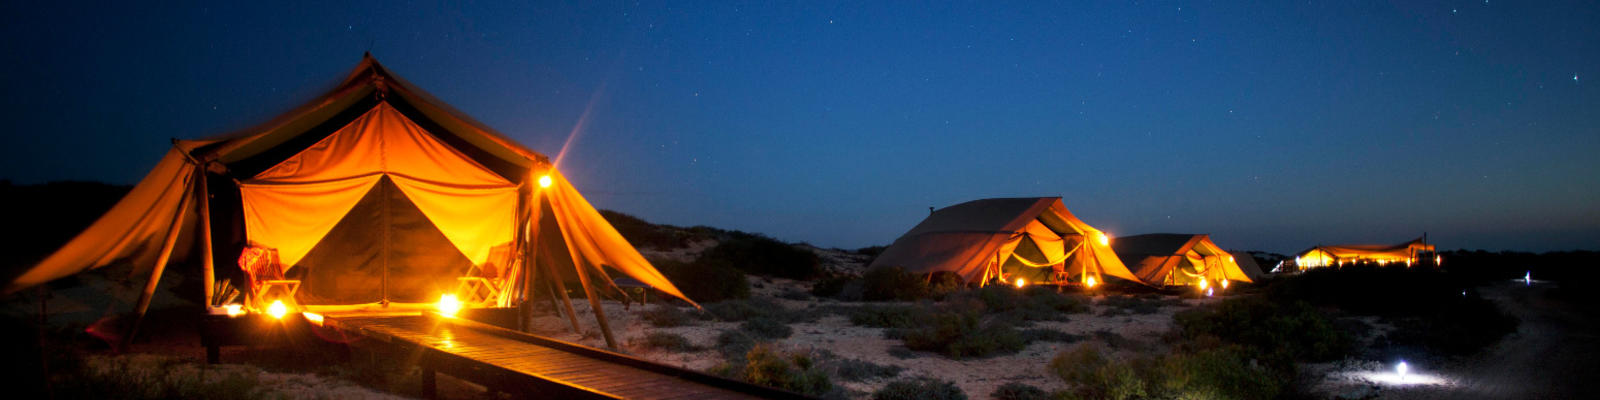 Luxury tents lit up under the starry night sky